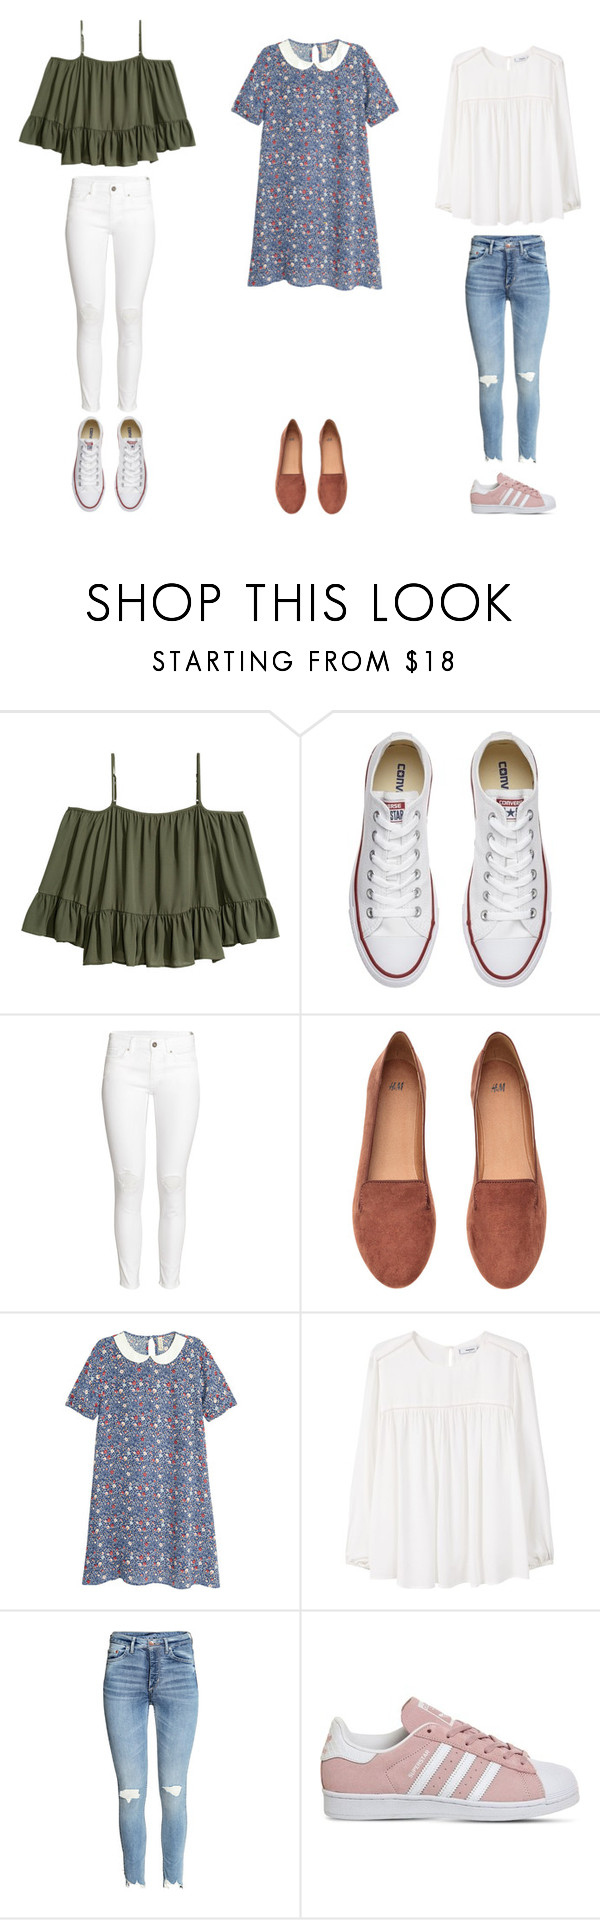 """""""Untitled #2869"""" by lespybook ❤ liked on Polyvore featuring Converse, H&M, MANGO and adidas"""